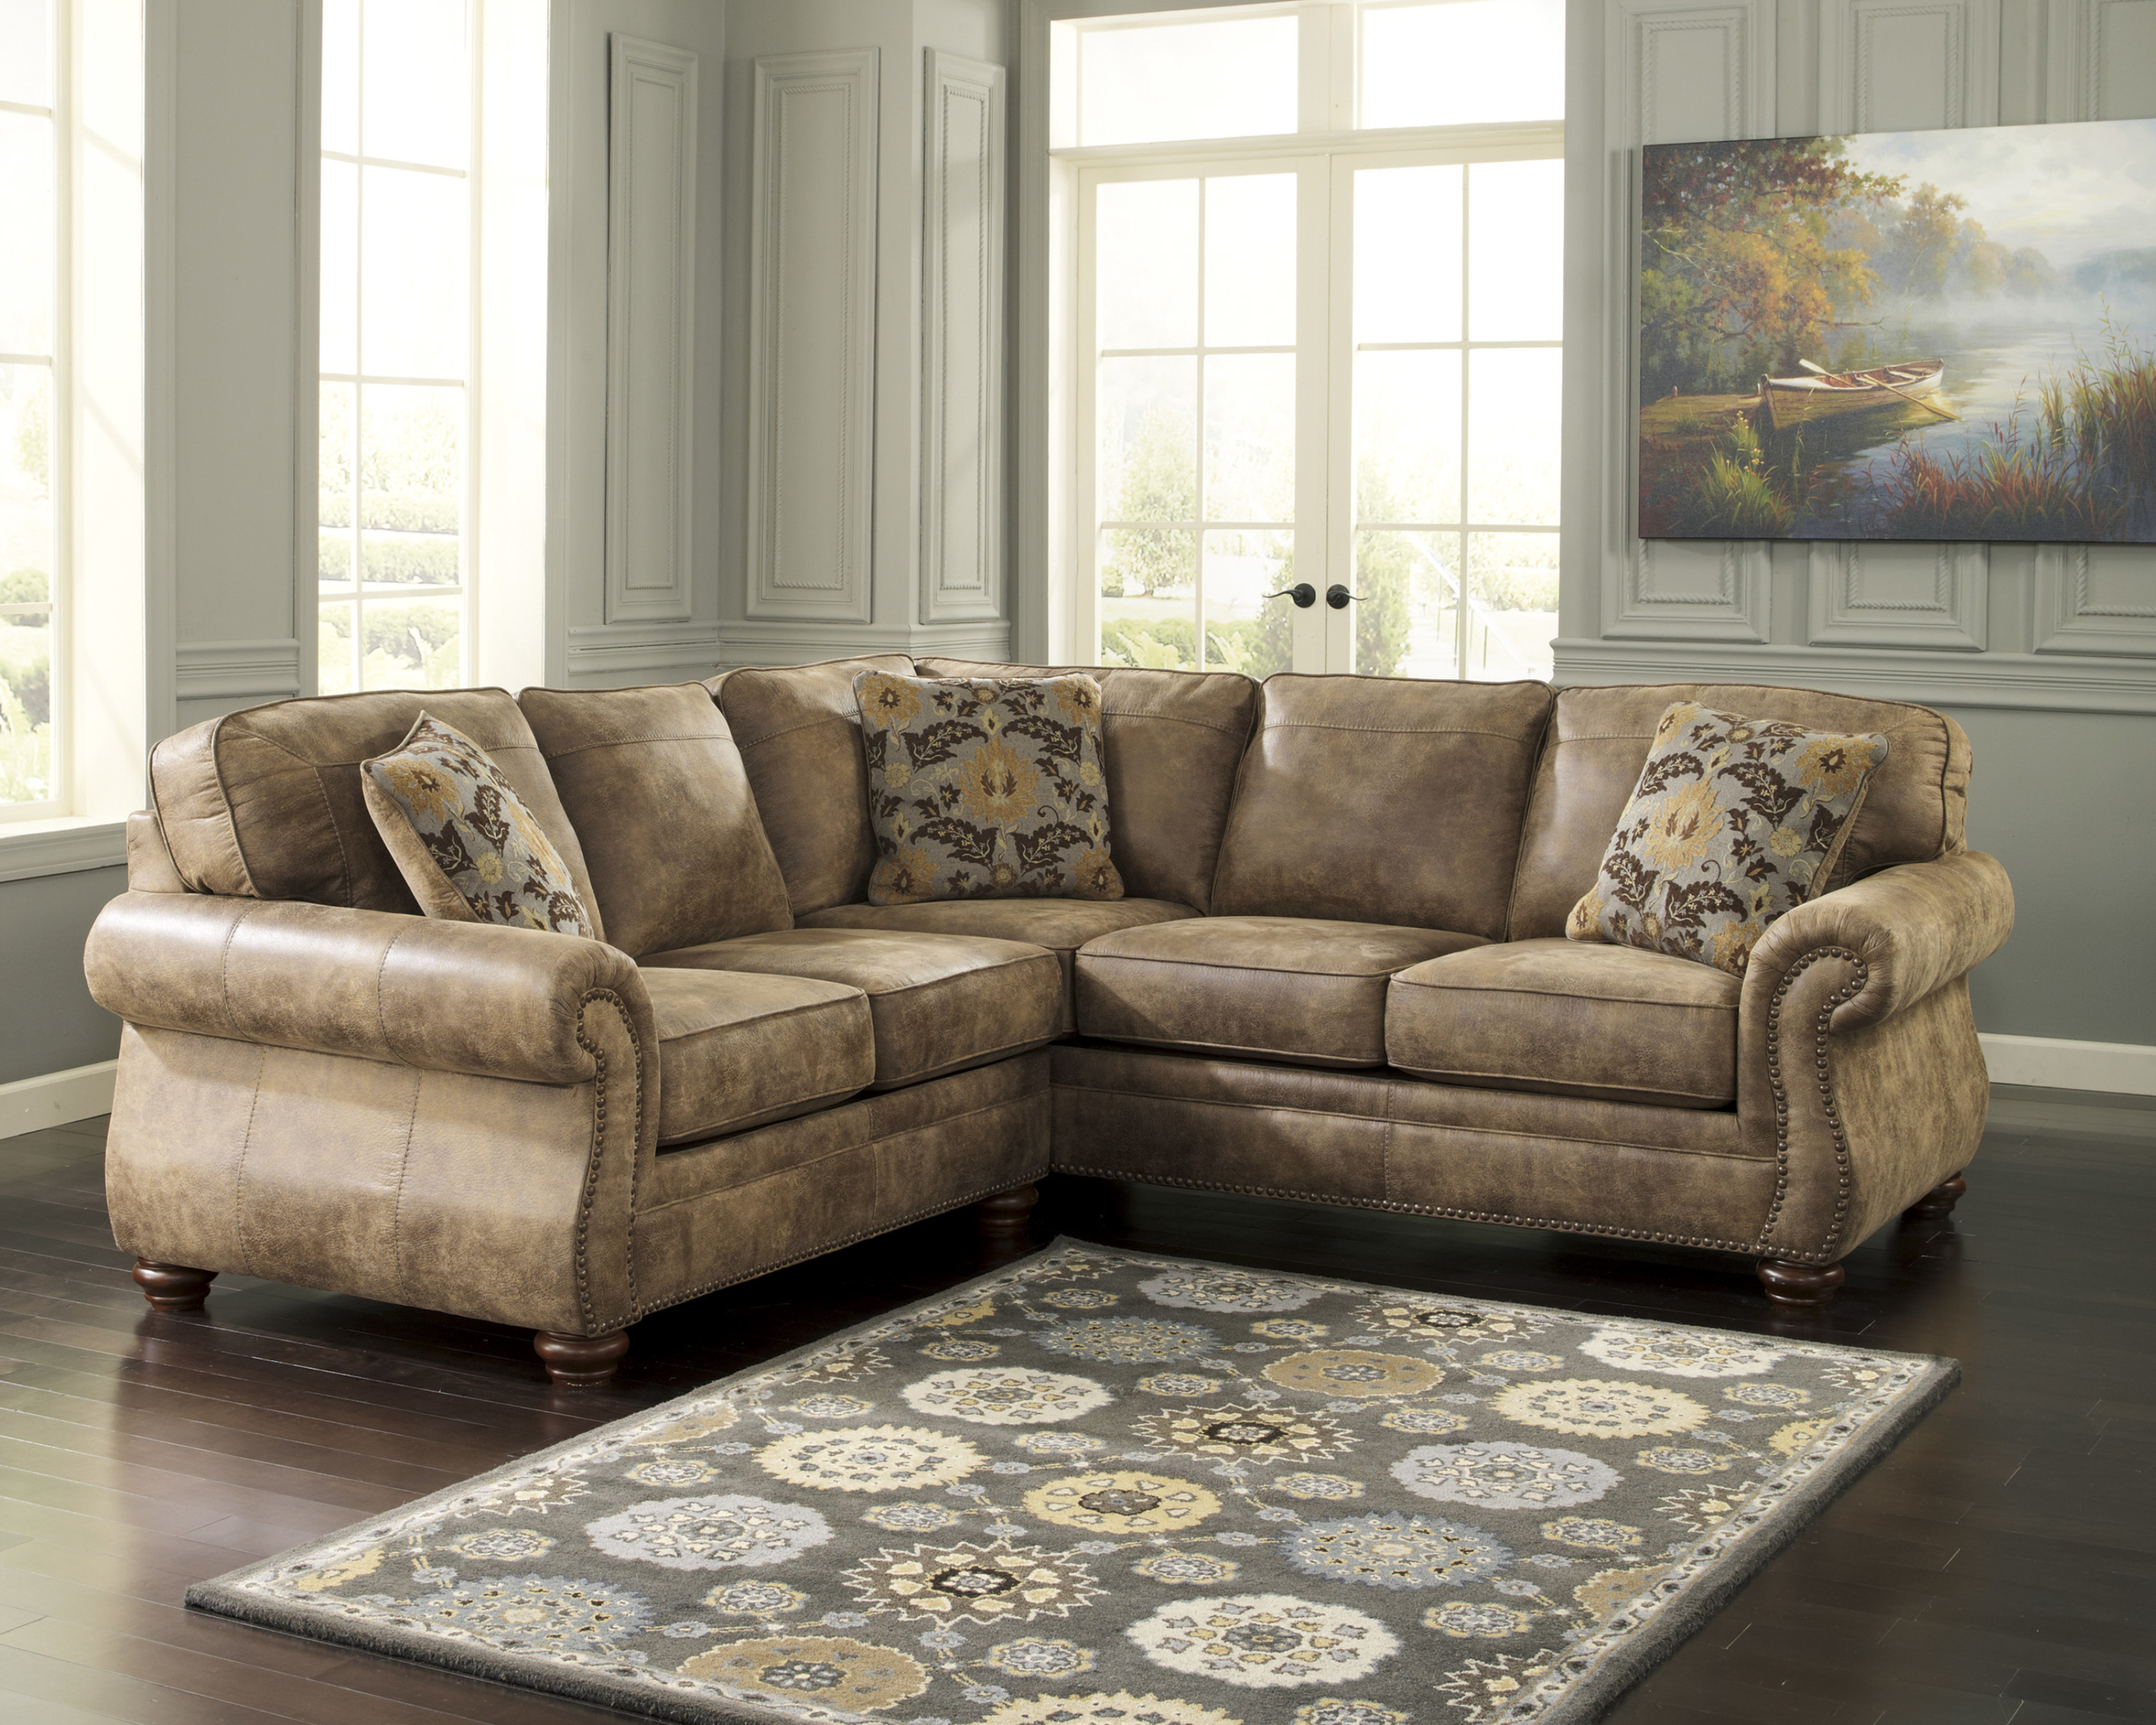 Picture of: Small Leather Sectional Sofa For 2020 Ideas On Foter